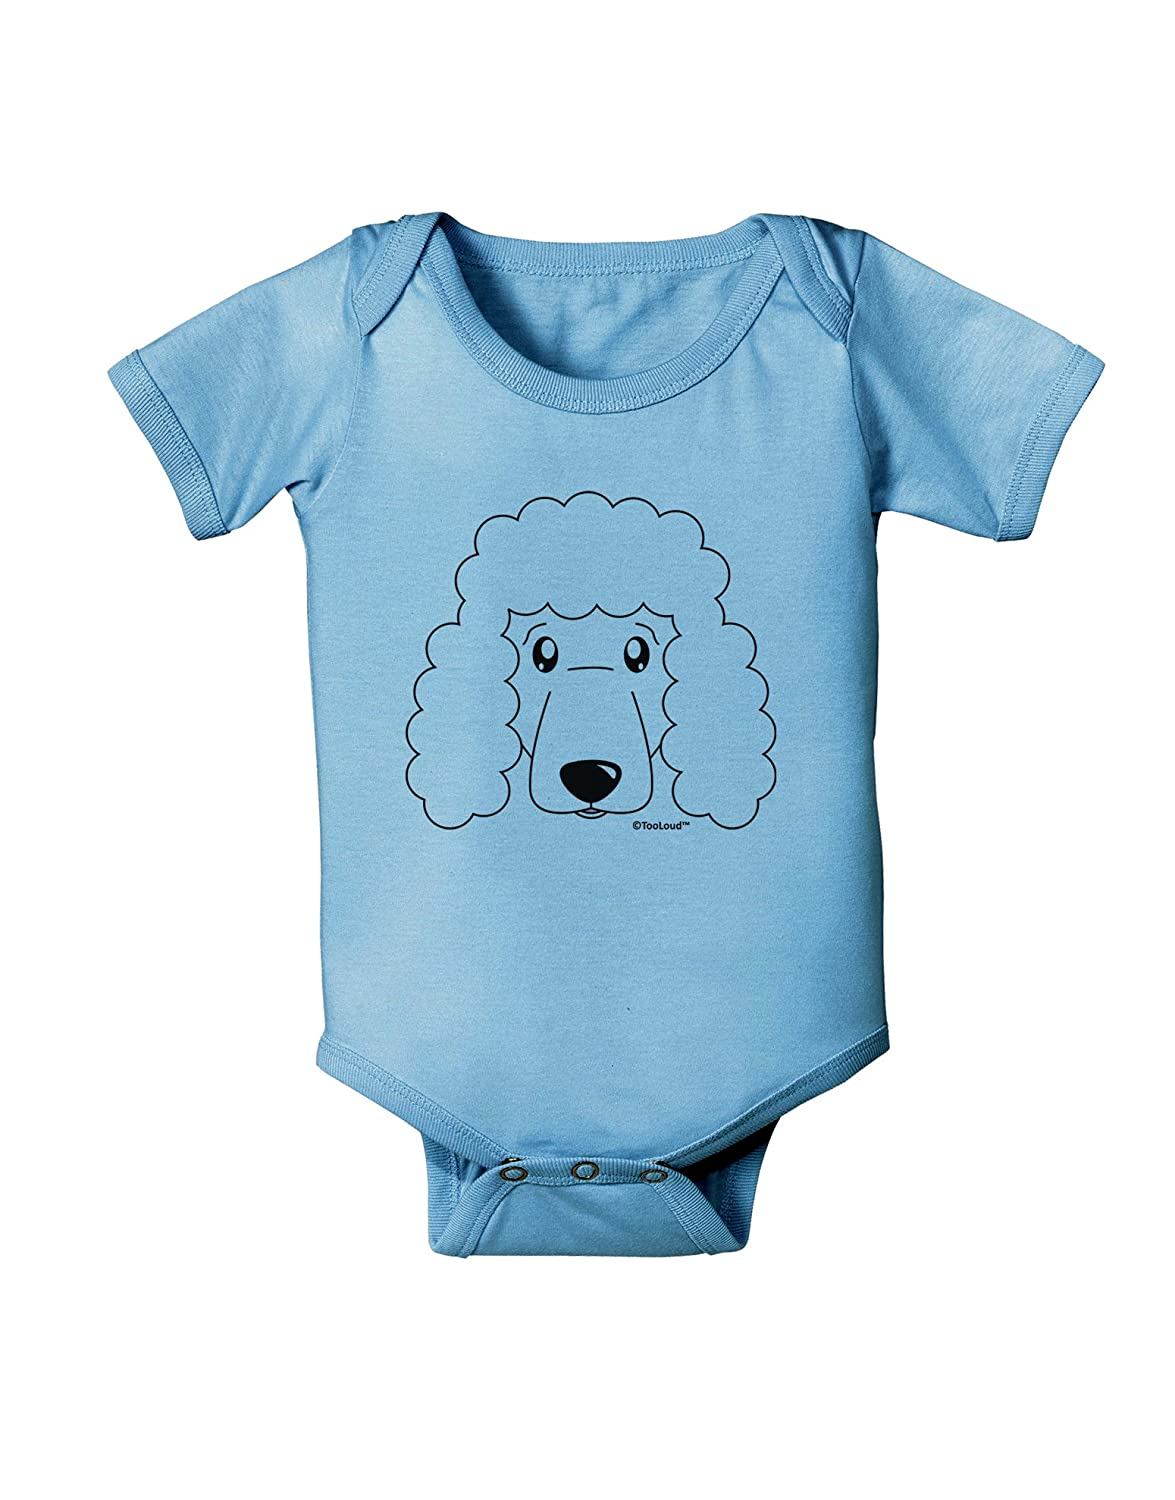 TooLoud Cute Poodle Dog White Baby Romper Bodysuit